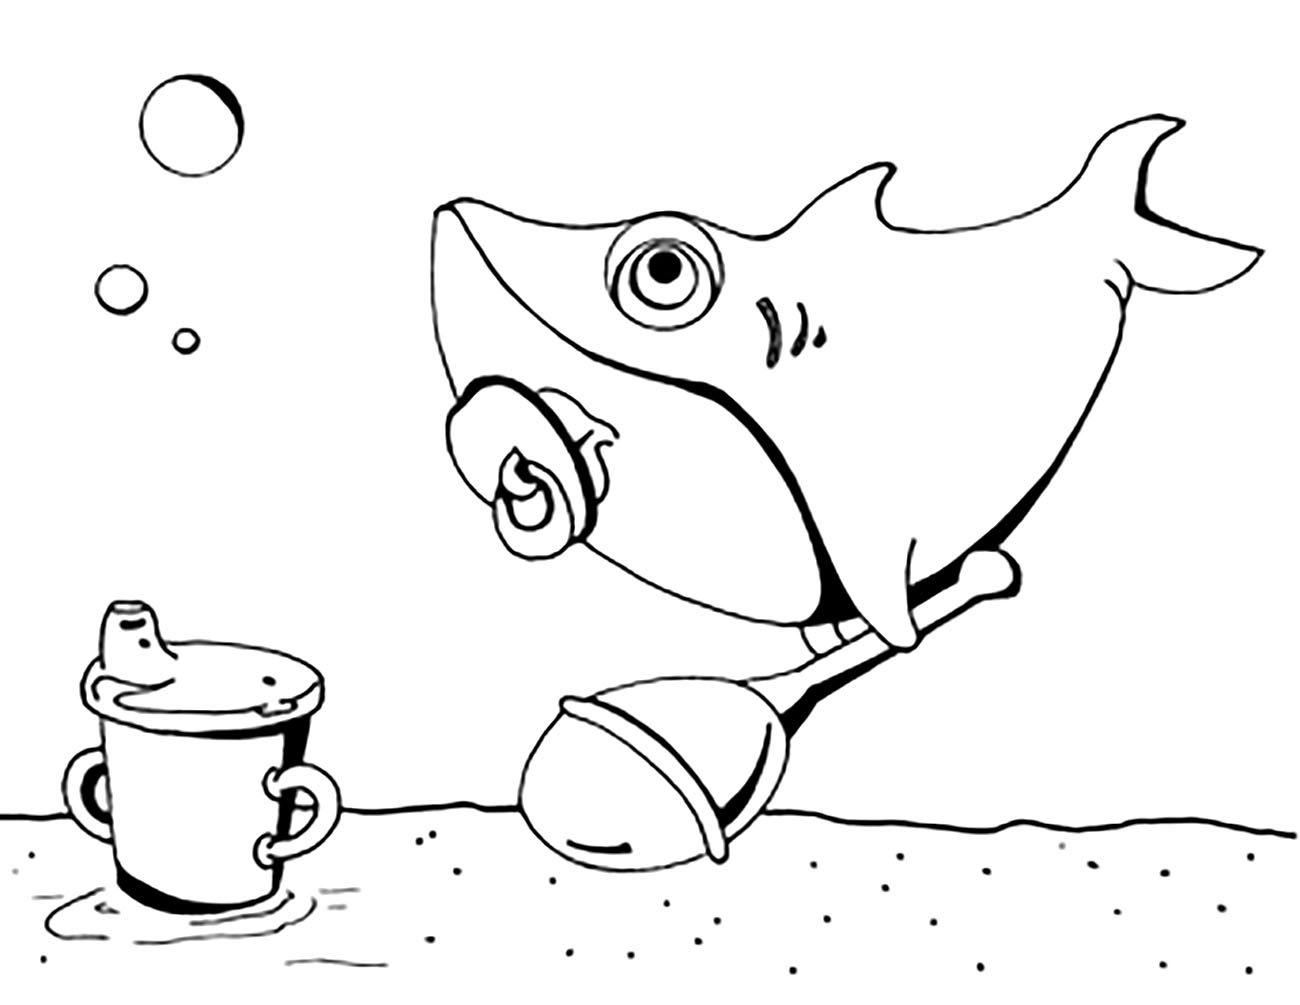 Free Sharks coloring page to print and color, for kids